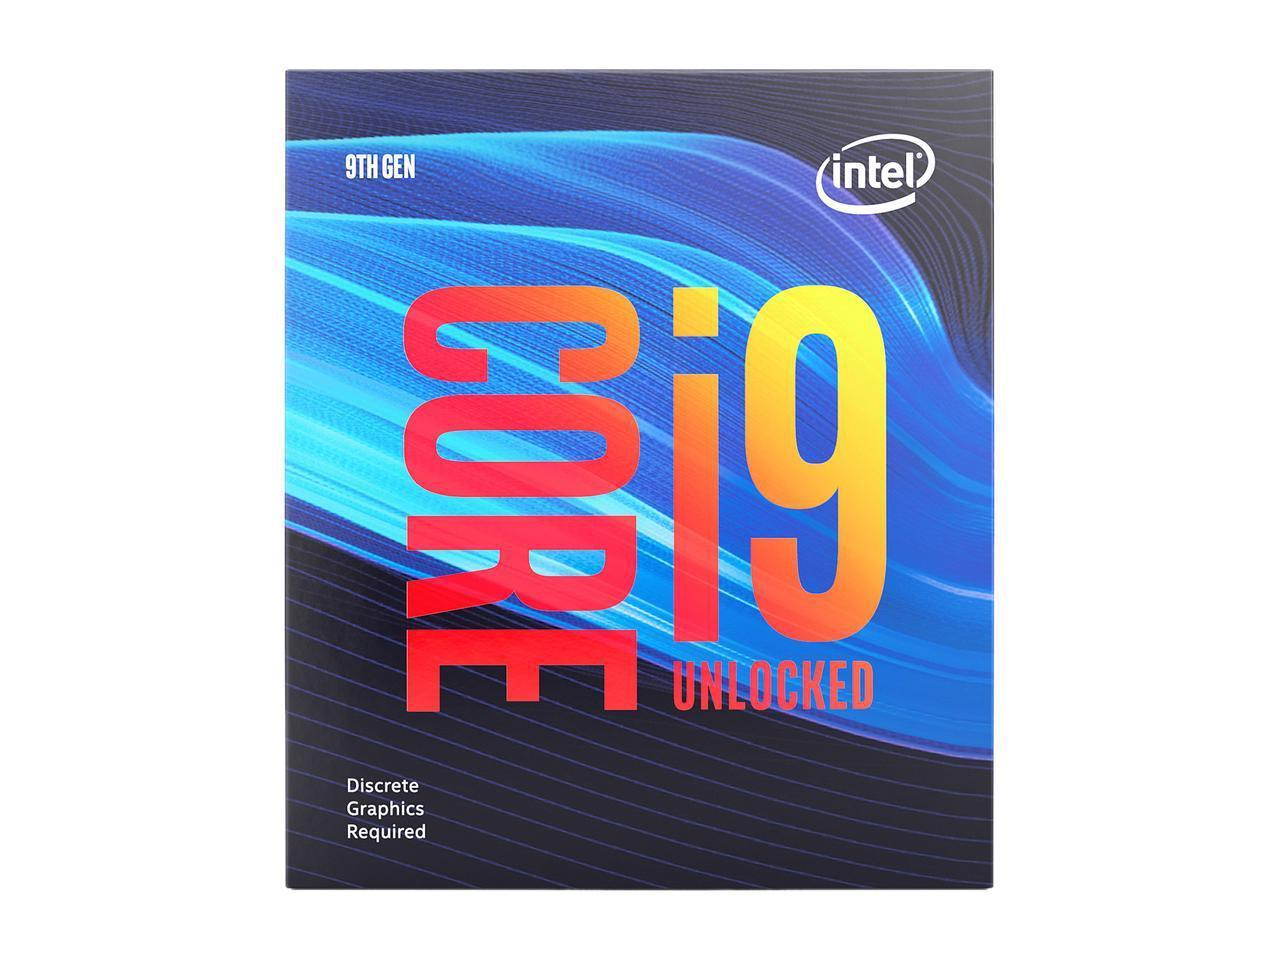 Процесор Intel Coffee Lake Core i9-9900KF 3.60GHz (up to 5.00GHz), 16MB, 95W,  LGA1151 (300 Series)